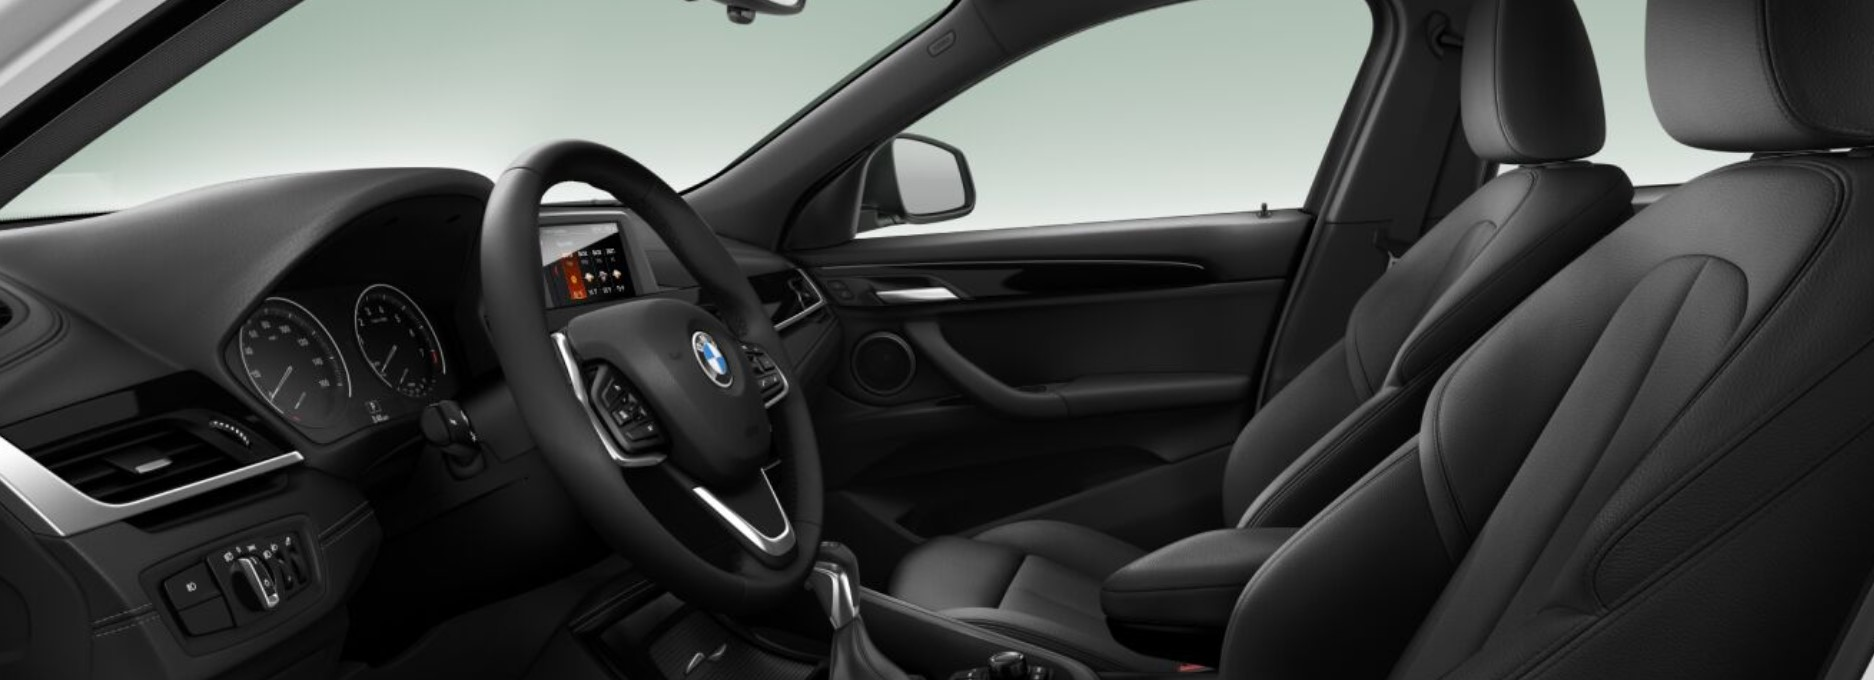 2018 BMW X2 Black Leather Interior